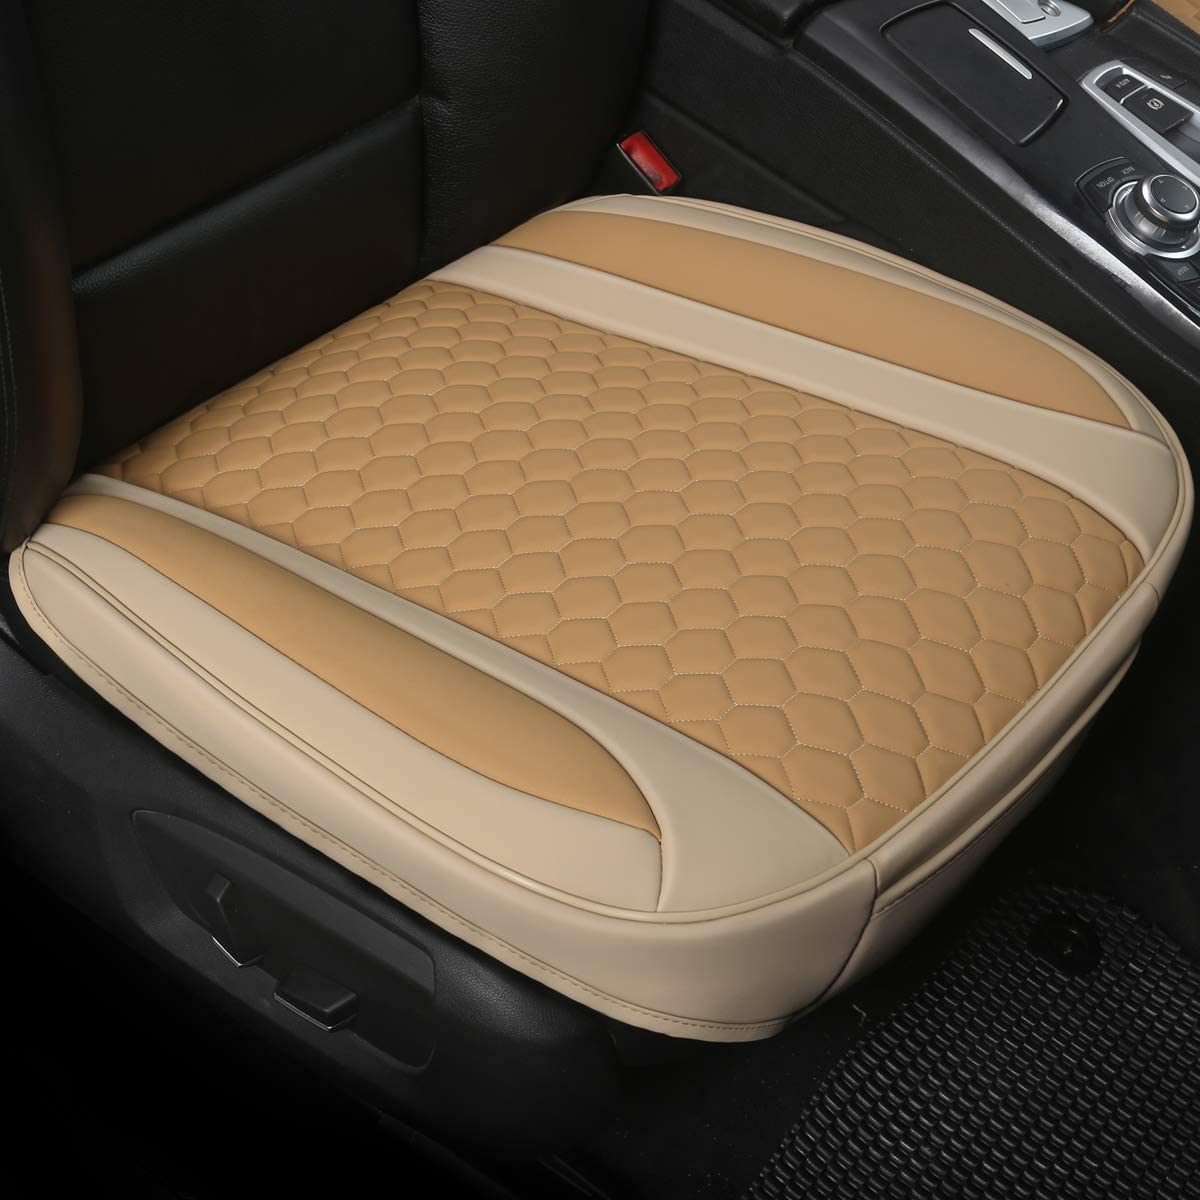 21.26/×20.86 Inches Black Panther 1 Pair Luxury PU Leather Car Seat Covesr for Front Seats Bottom ,Compatible with 90/% Vehicles Mixed Beige